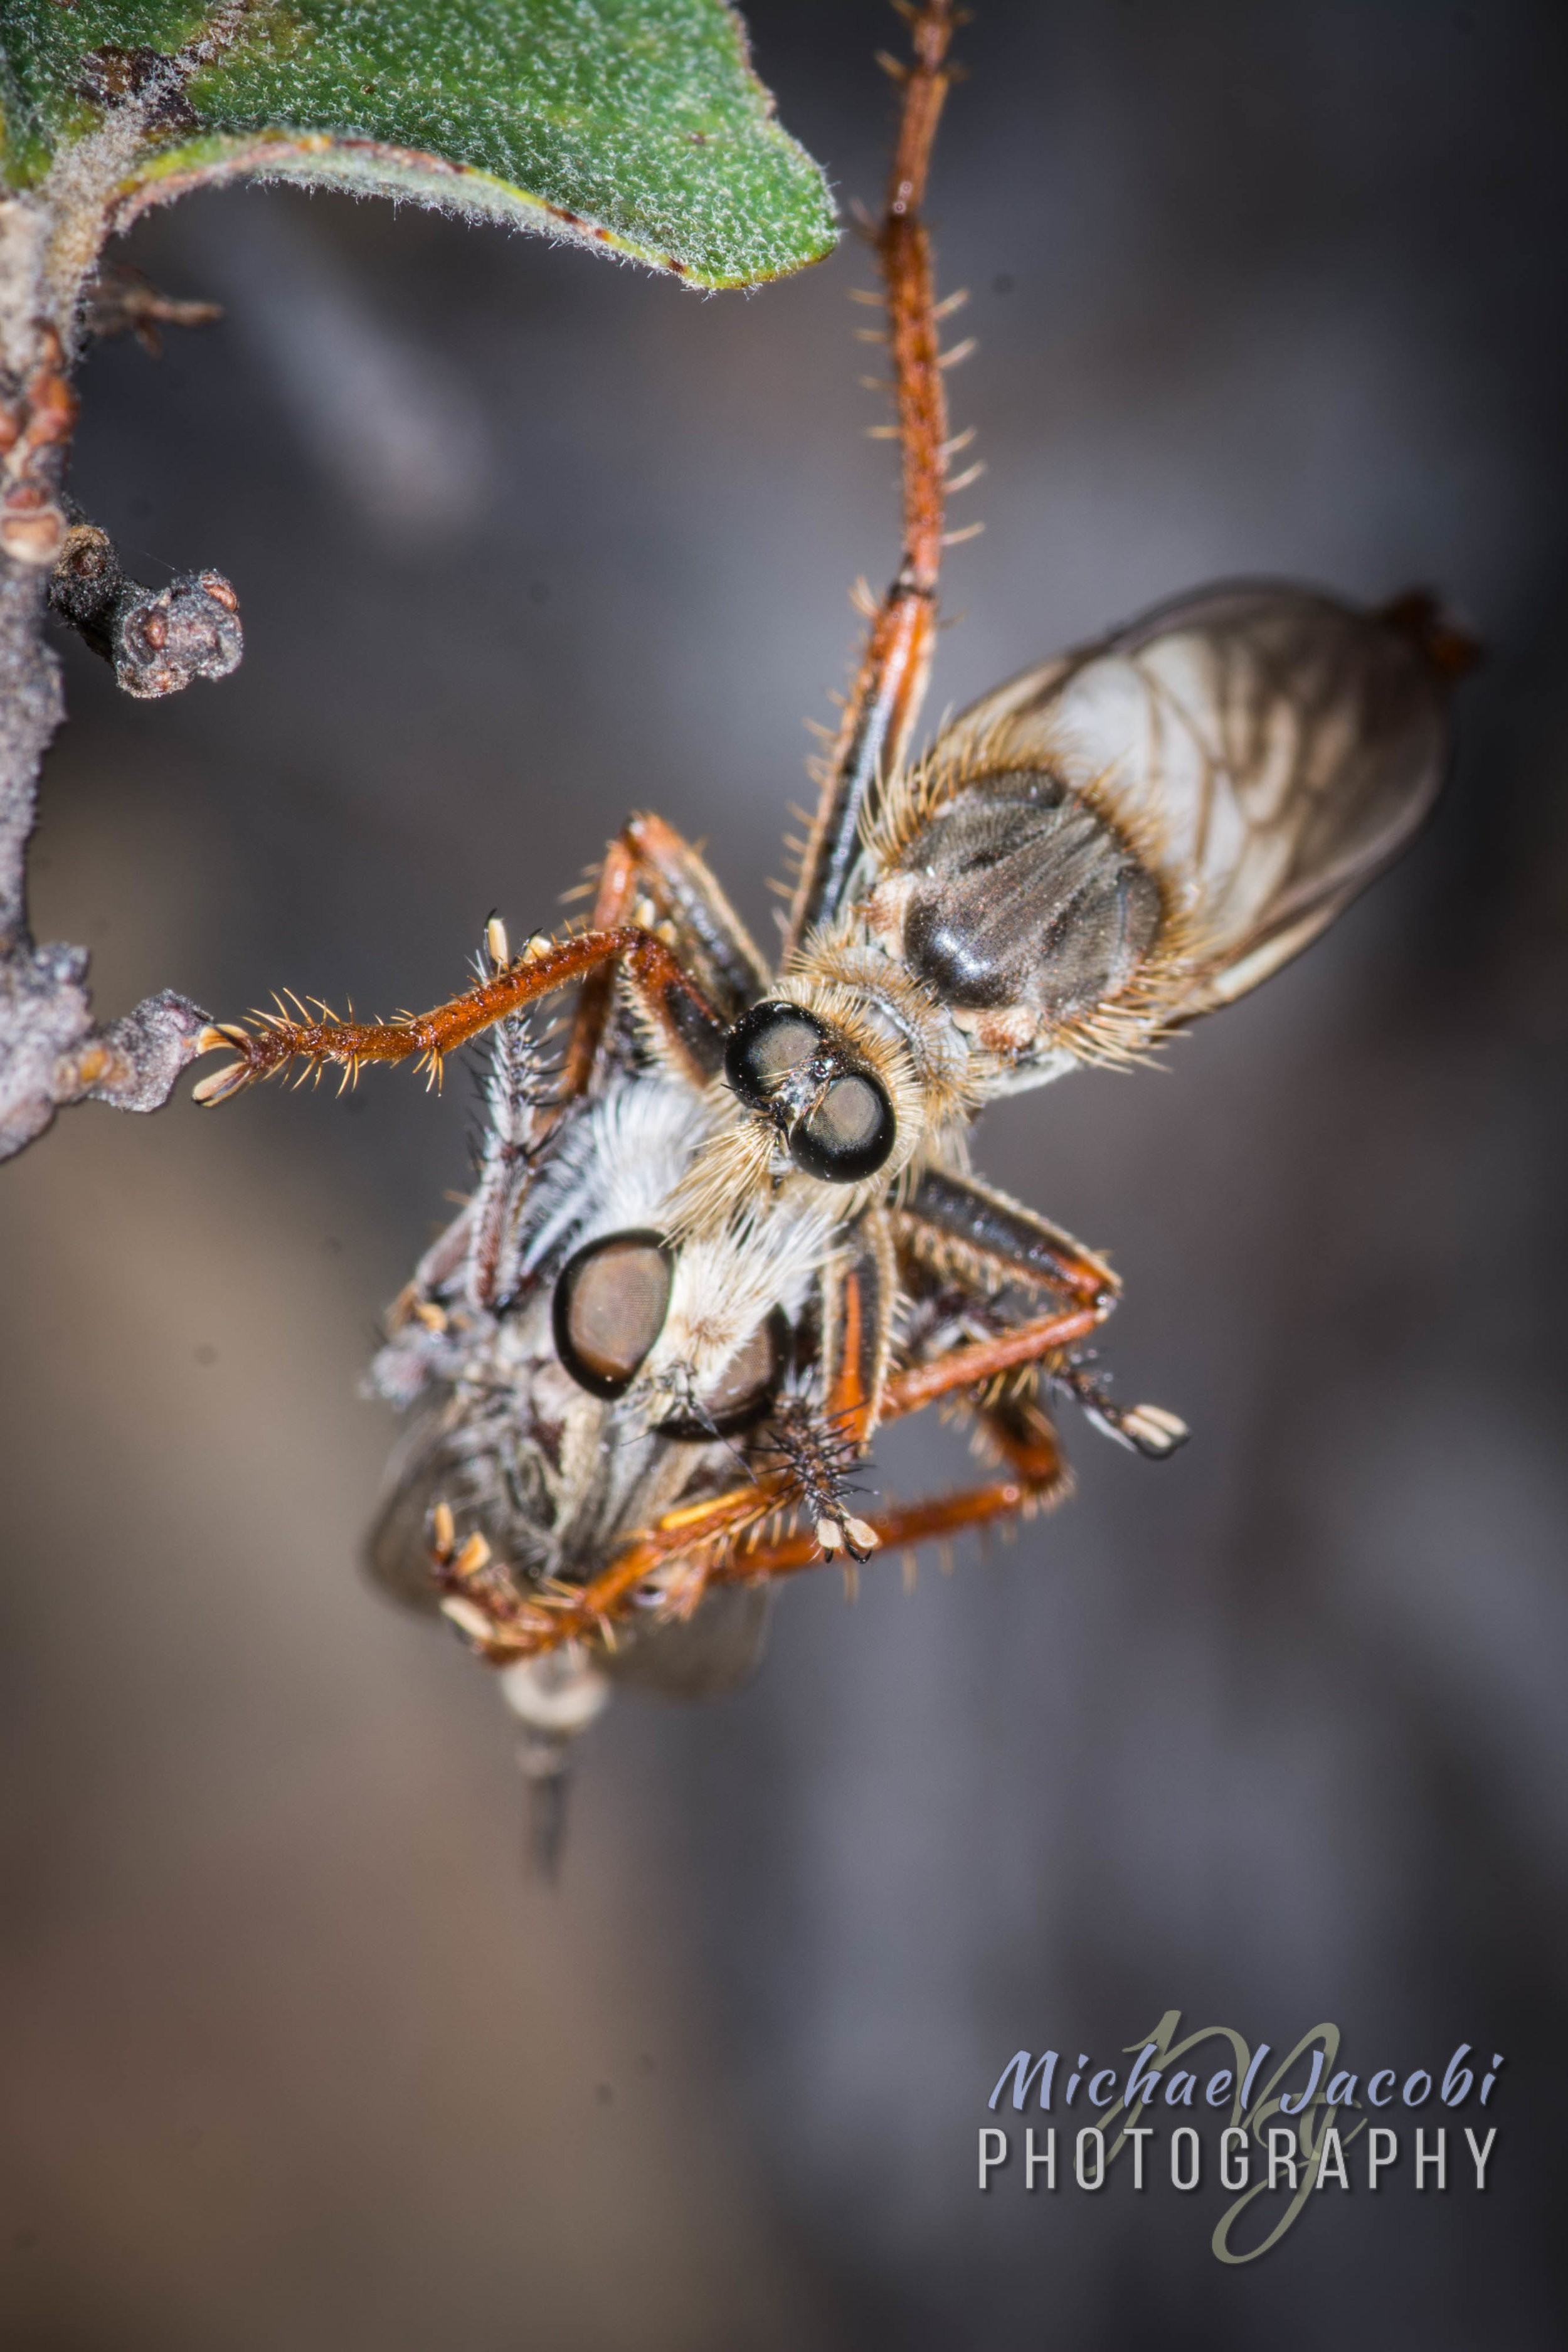 One type of robber fly devours a different species of robber fly